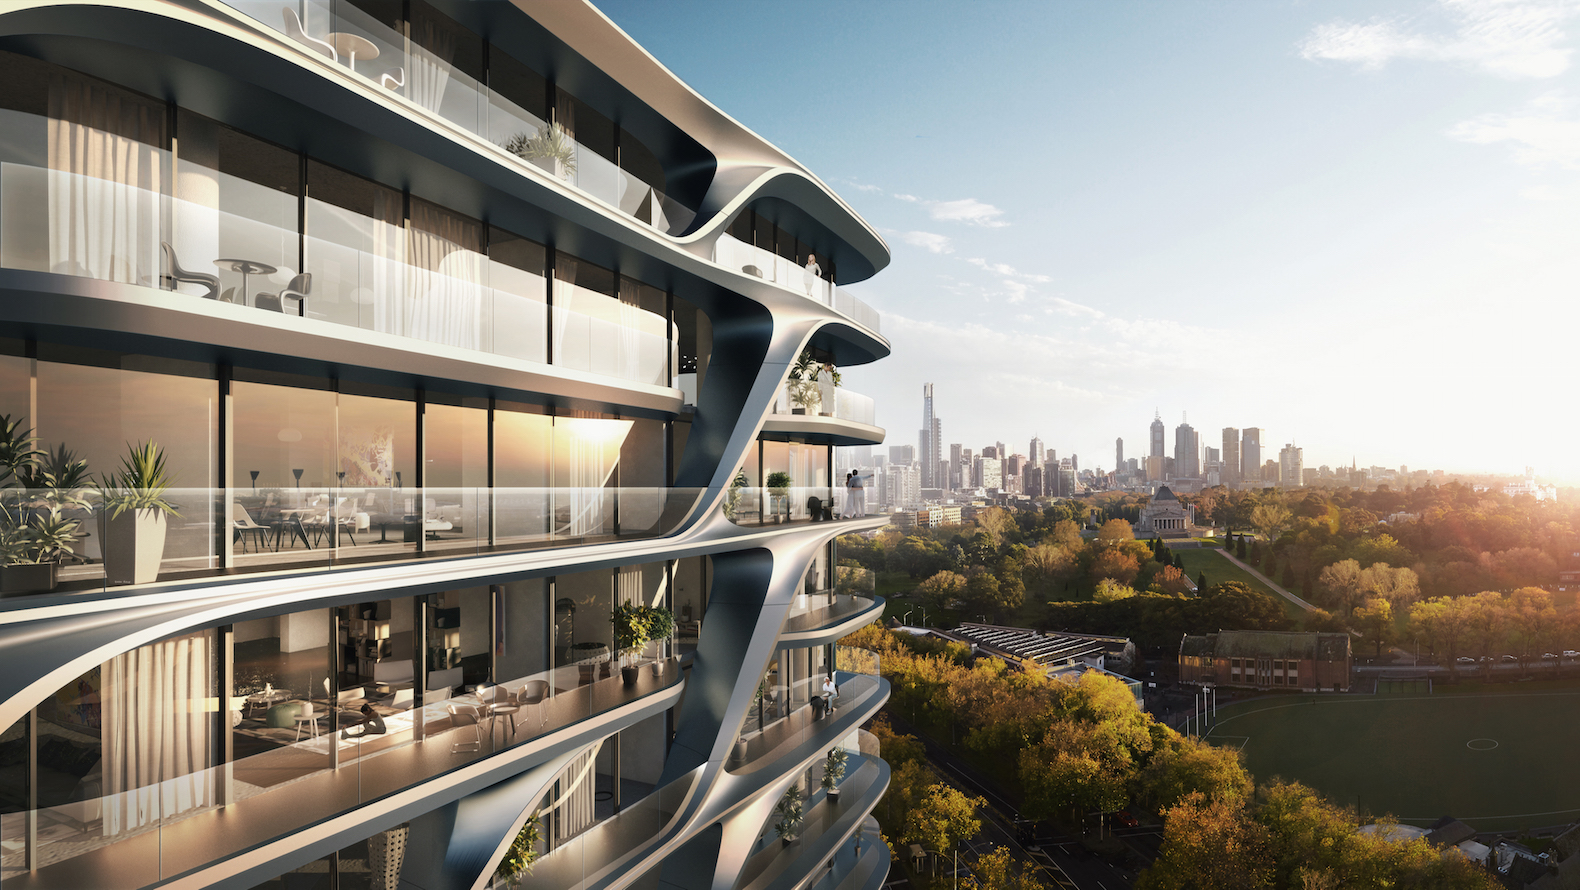 Zaha Hadid Architects unveils designs for wave-inspired Melbourne apartment tower